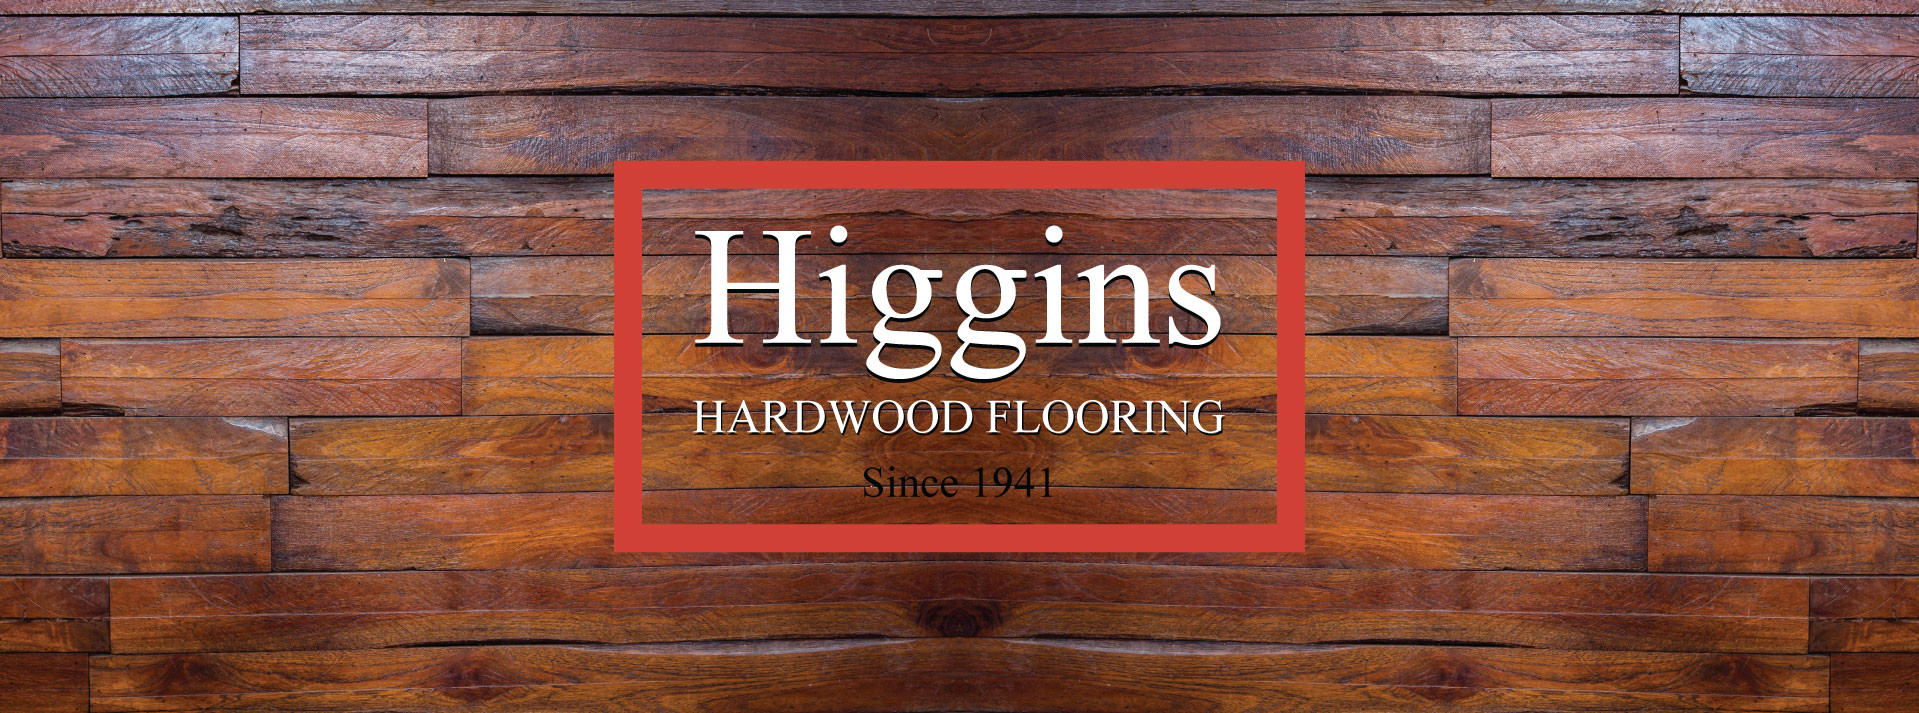 How to Install Hardwood Floor Borders Of Higgins Hardwood Flooring In Peterborough Oshawa Lindsay Ajax Inside Office Hours